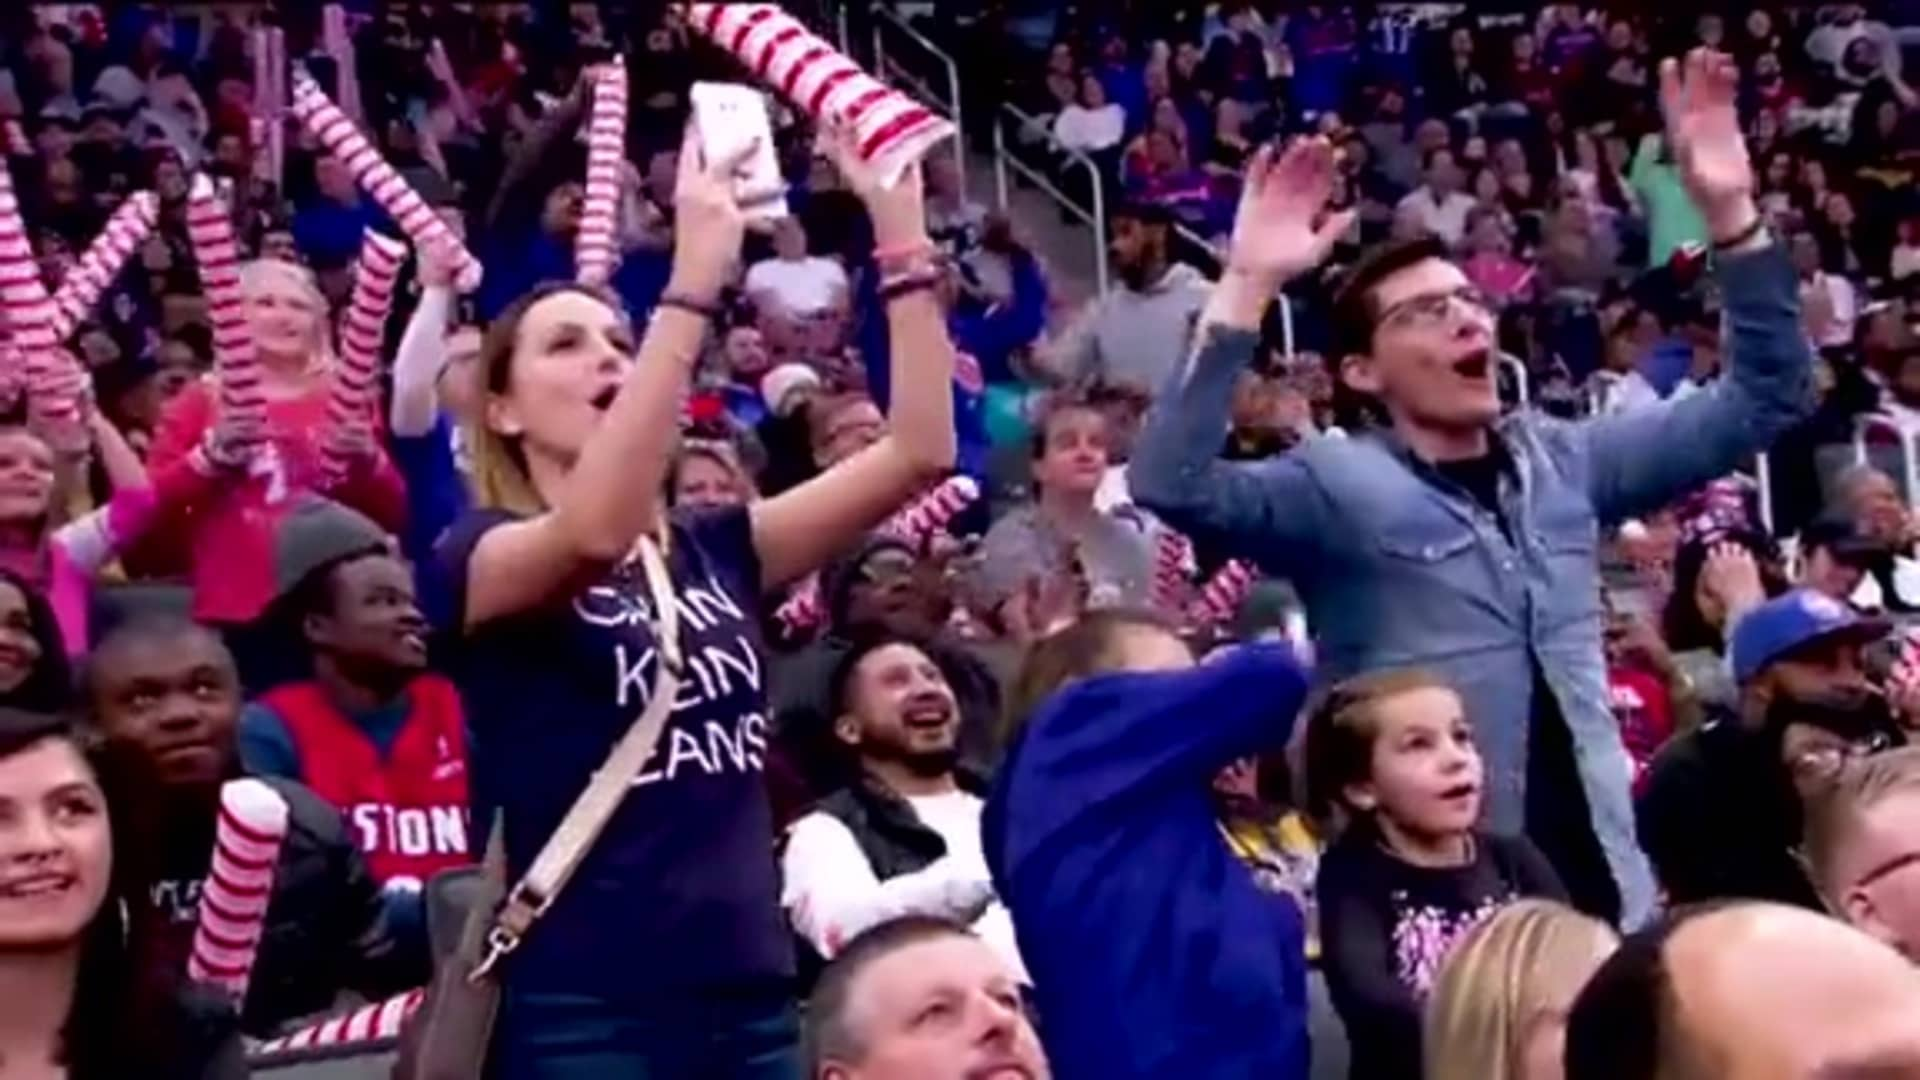 Dance Cam, presented by State Farm: November 29, 2019